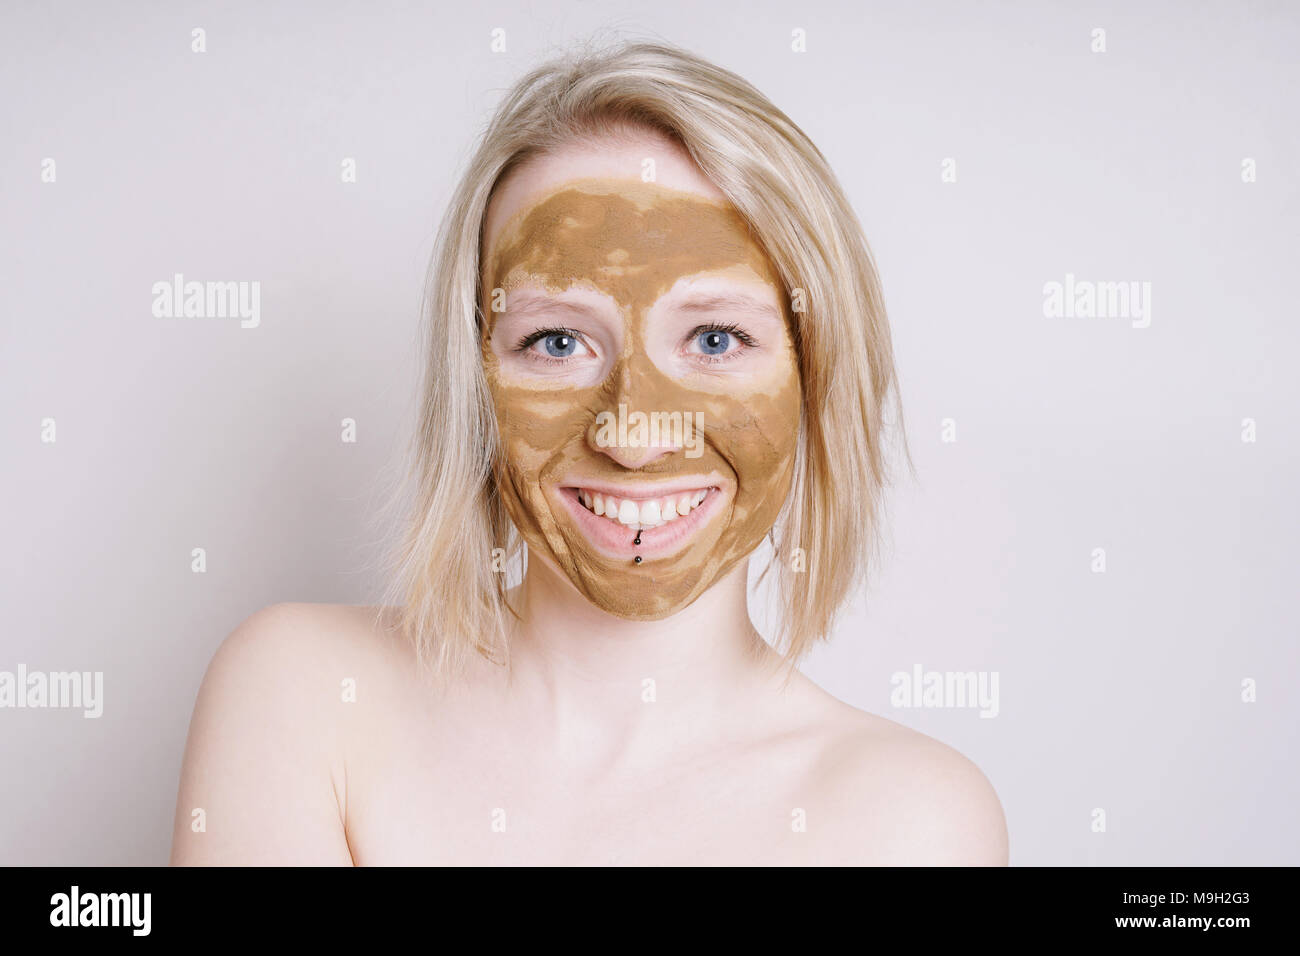 young woman with healing earth or clay beauty facial mask - Stock Image